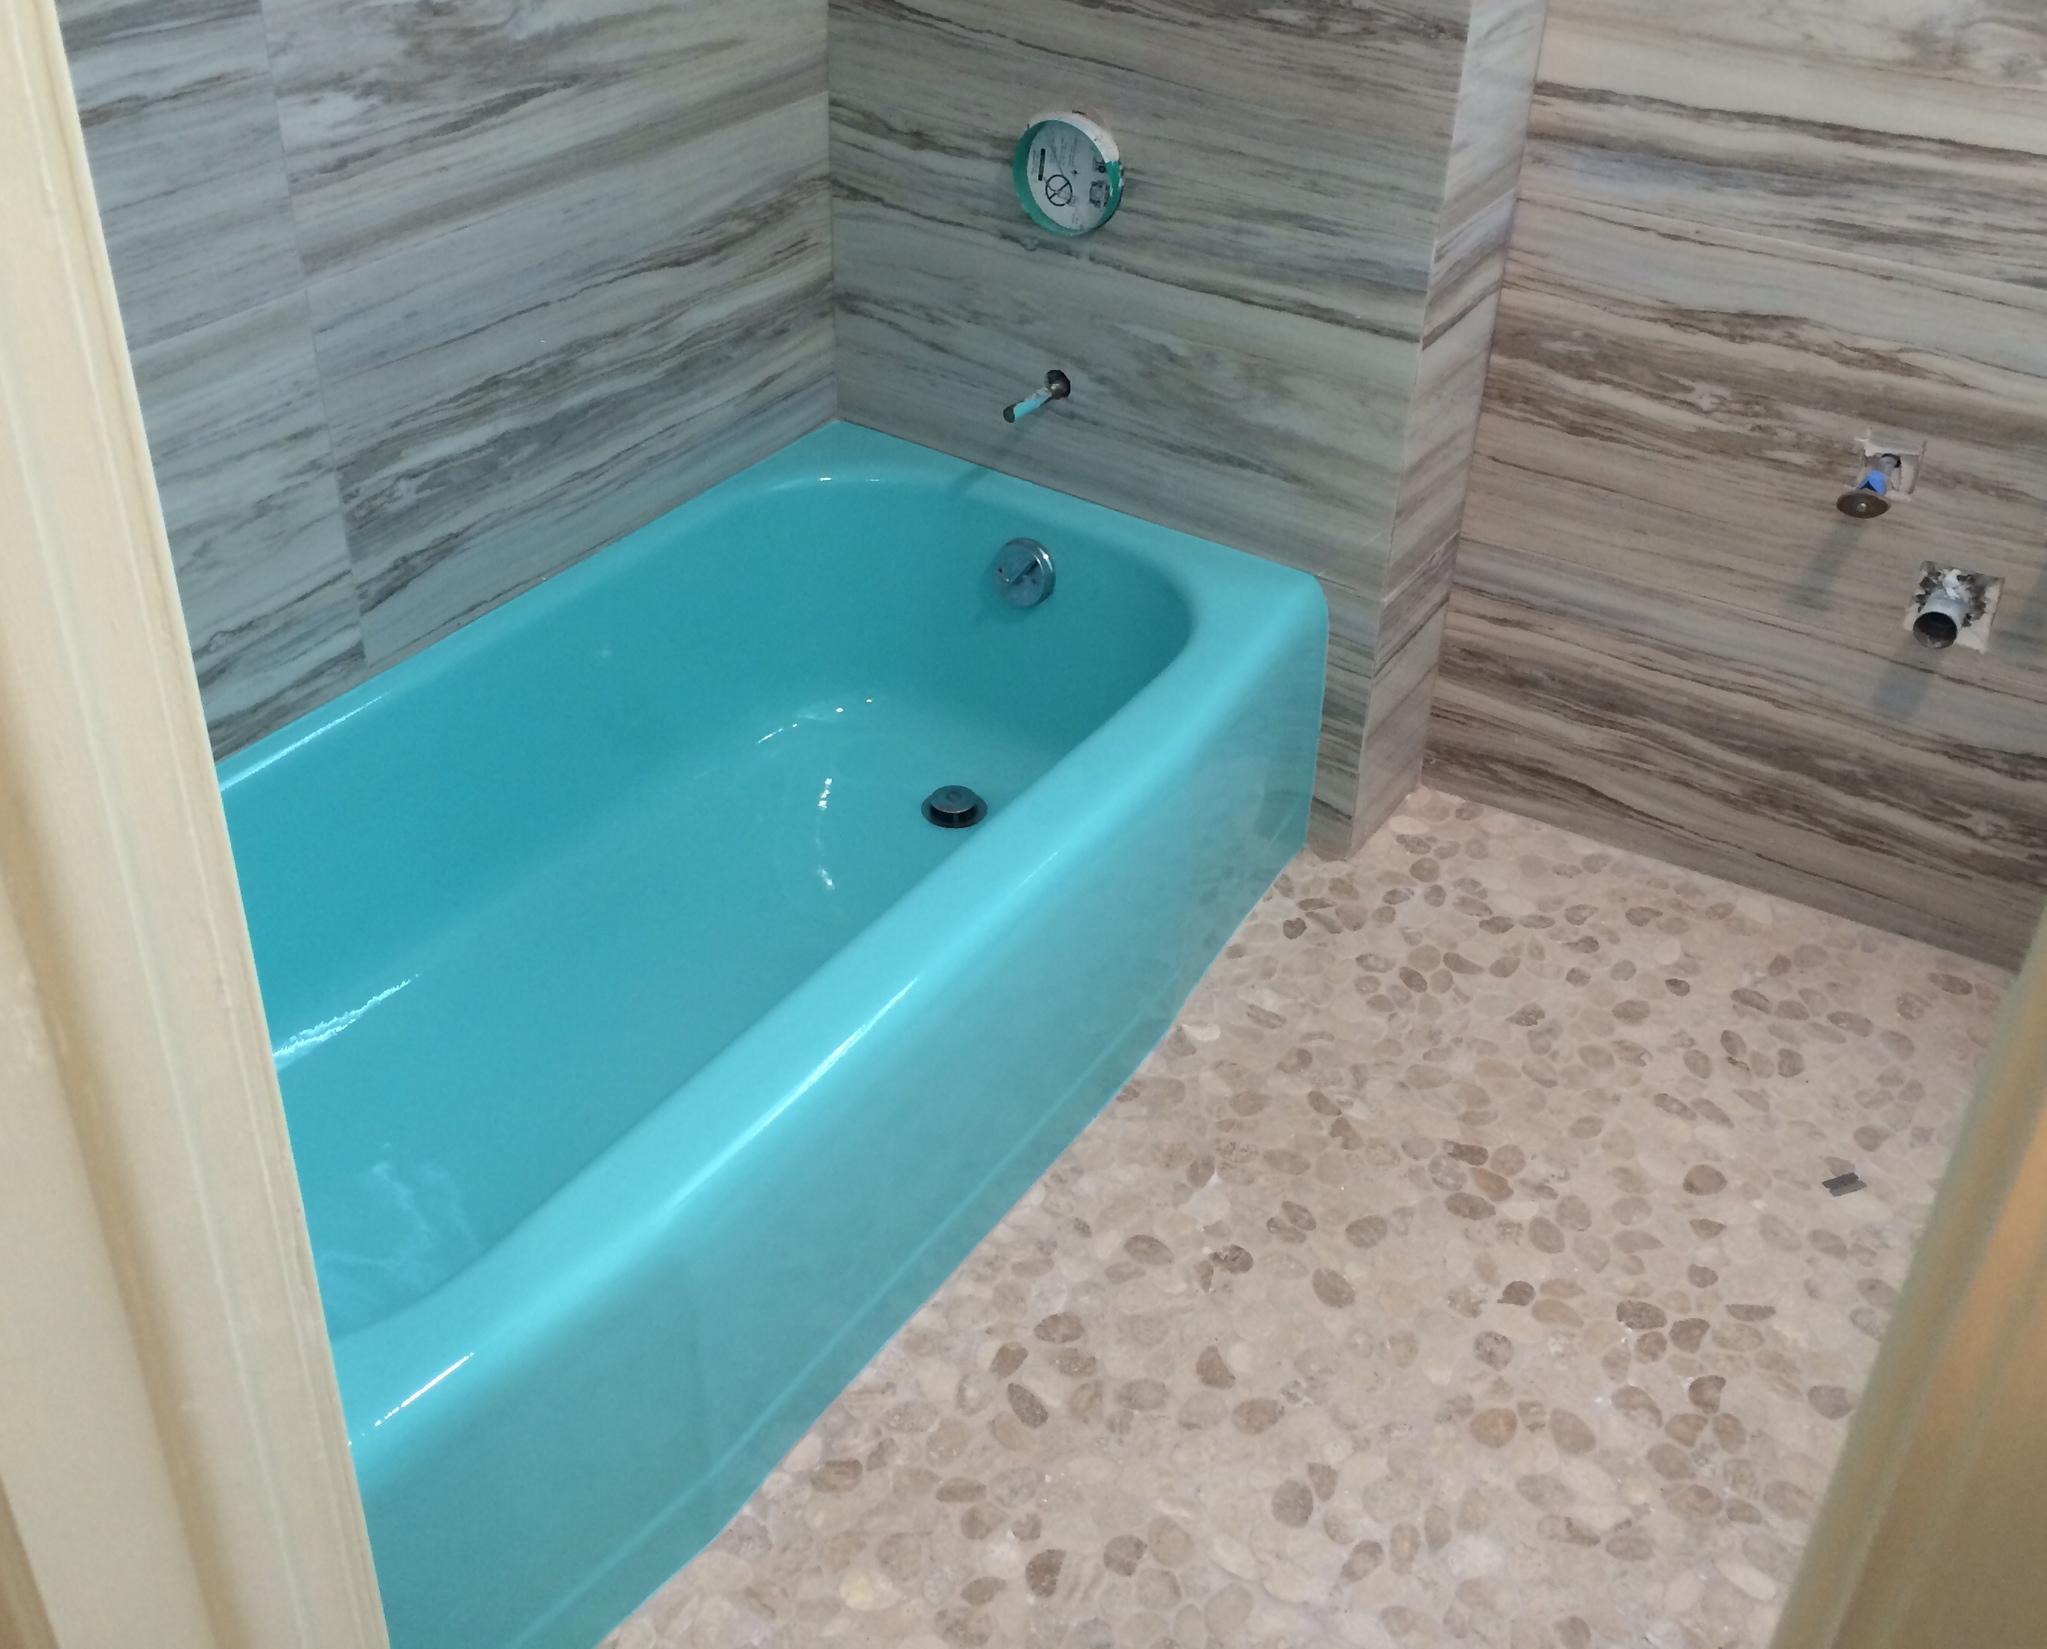 Florida Bathtub Refinishing Corp - YP.com